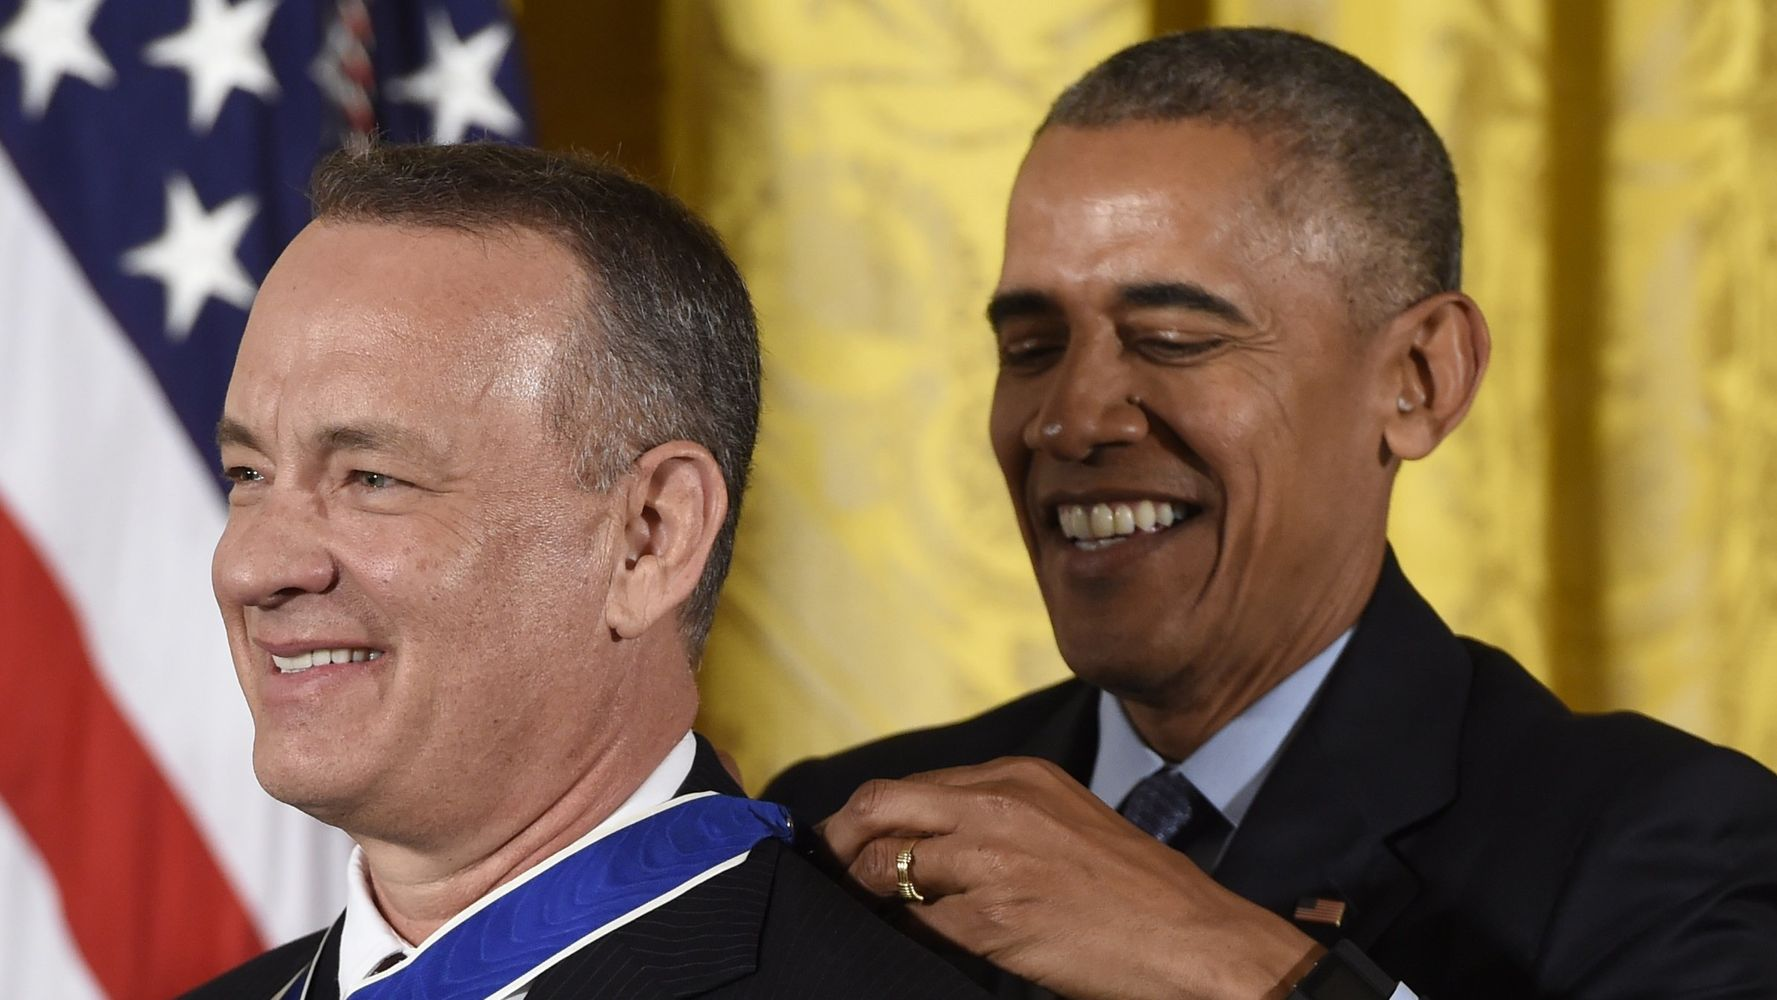 For Obama, It's The Last Of His Greats: 21 Awarded Presidential Medals of Freedom